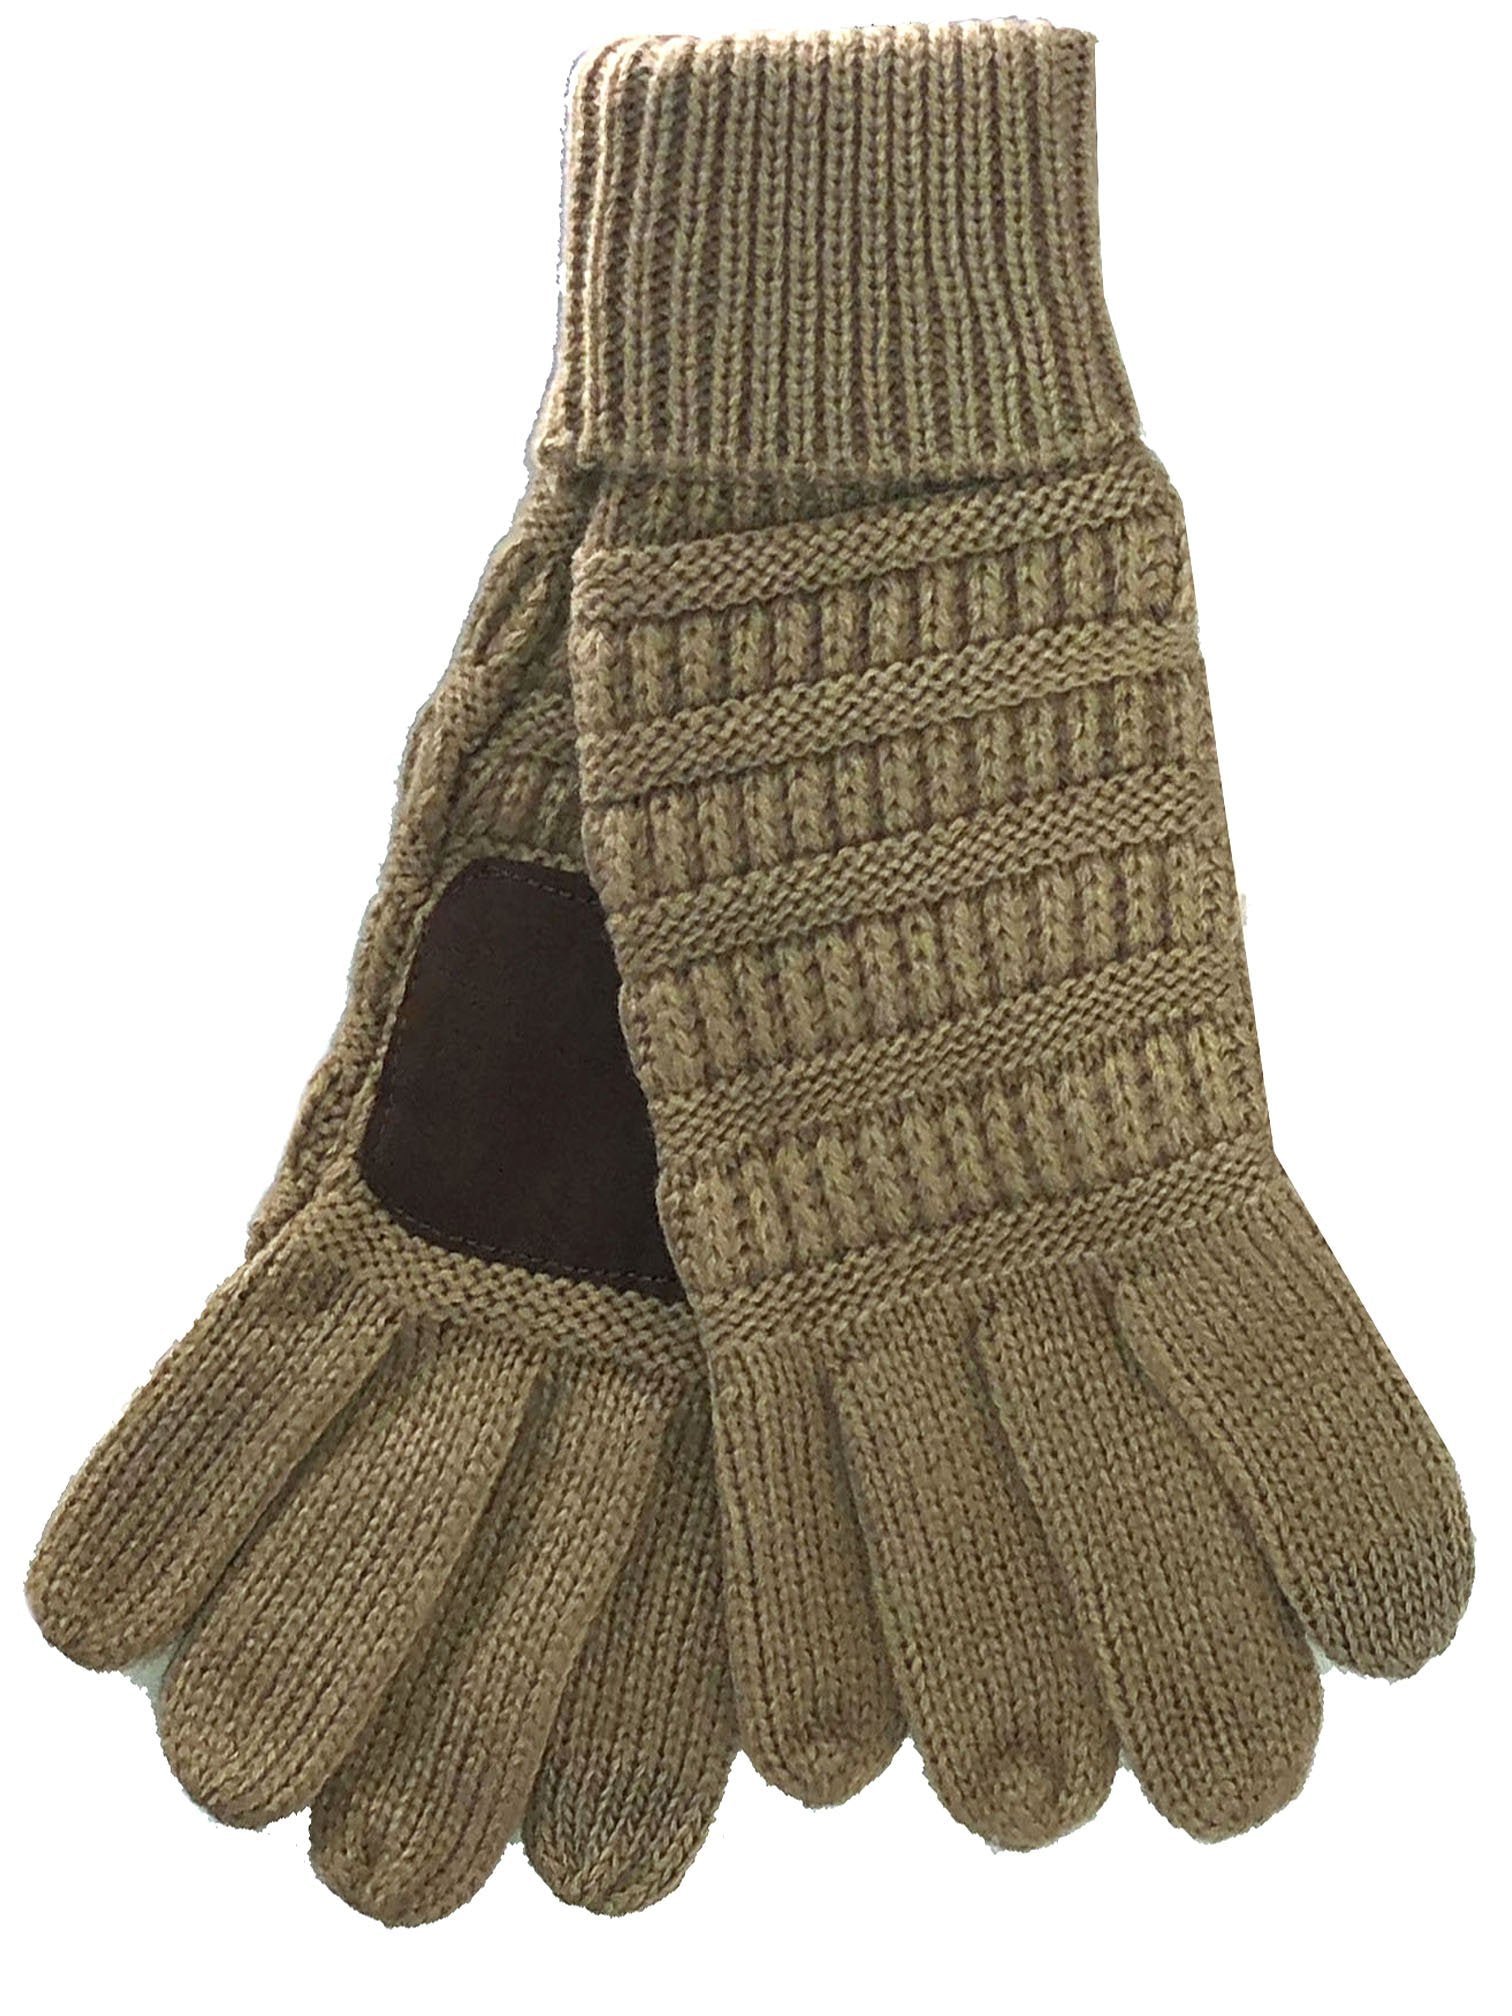 C.C G-20 Camel Gloves